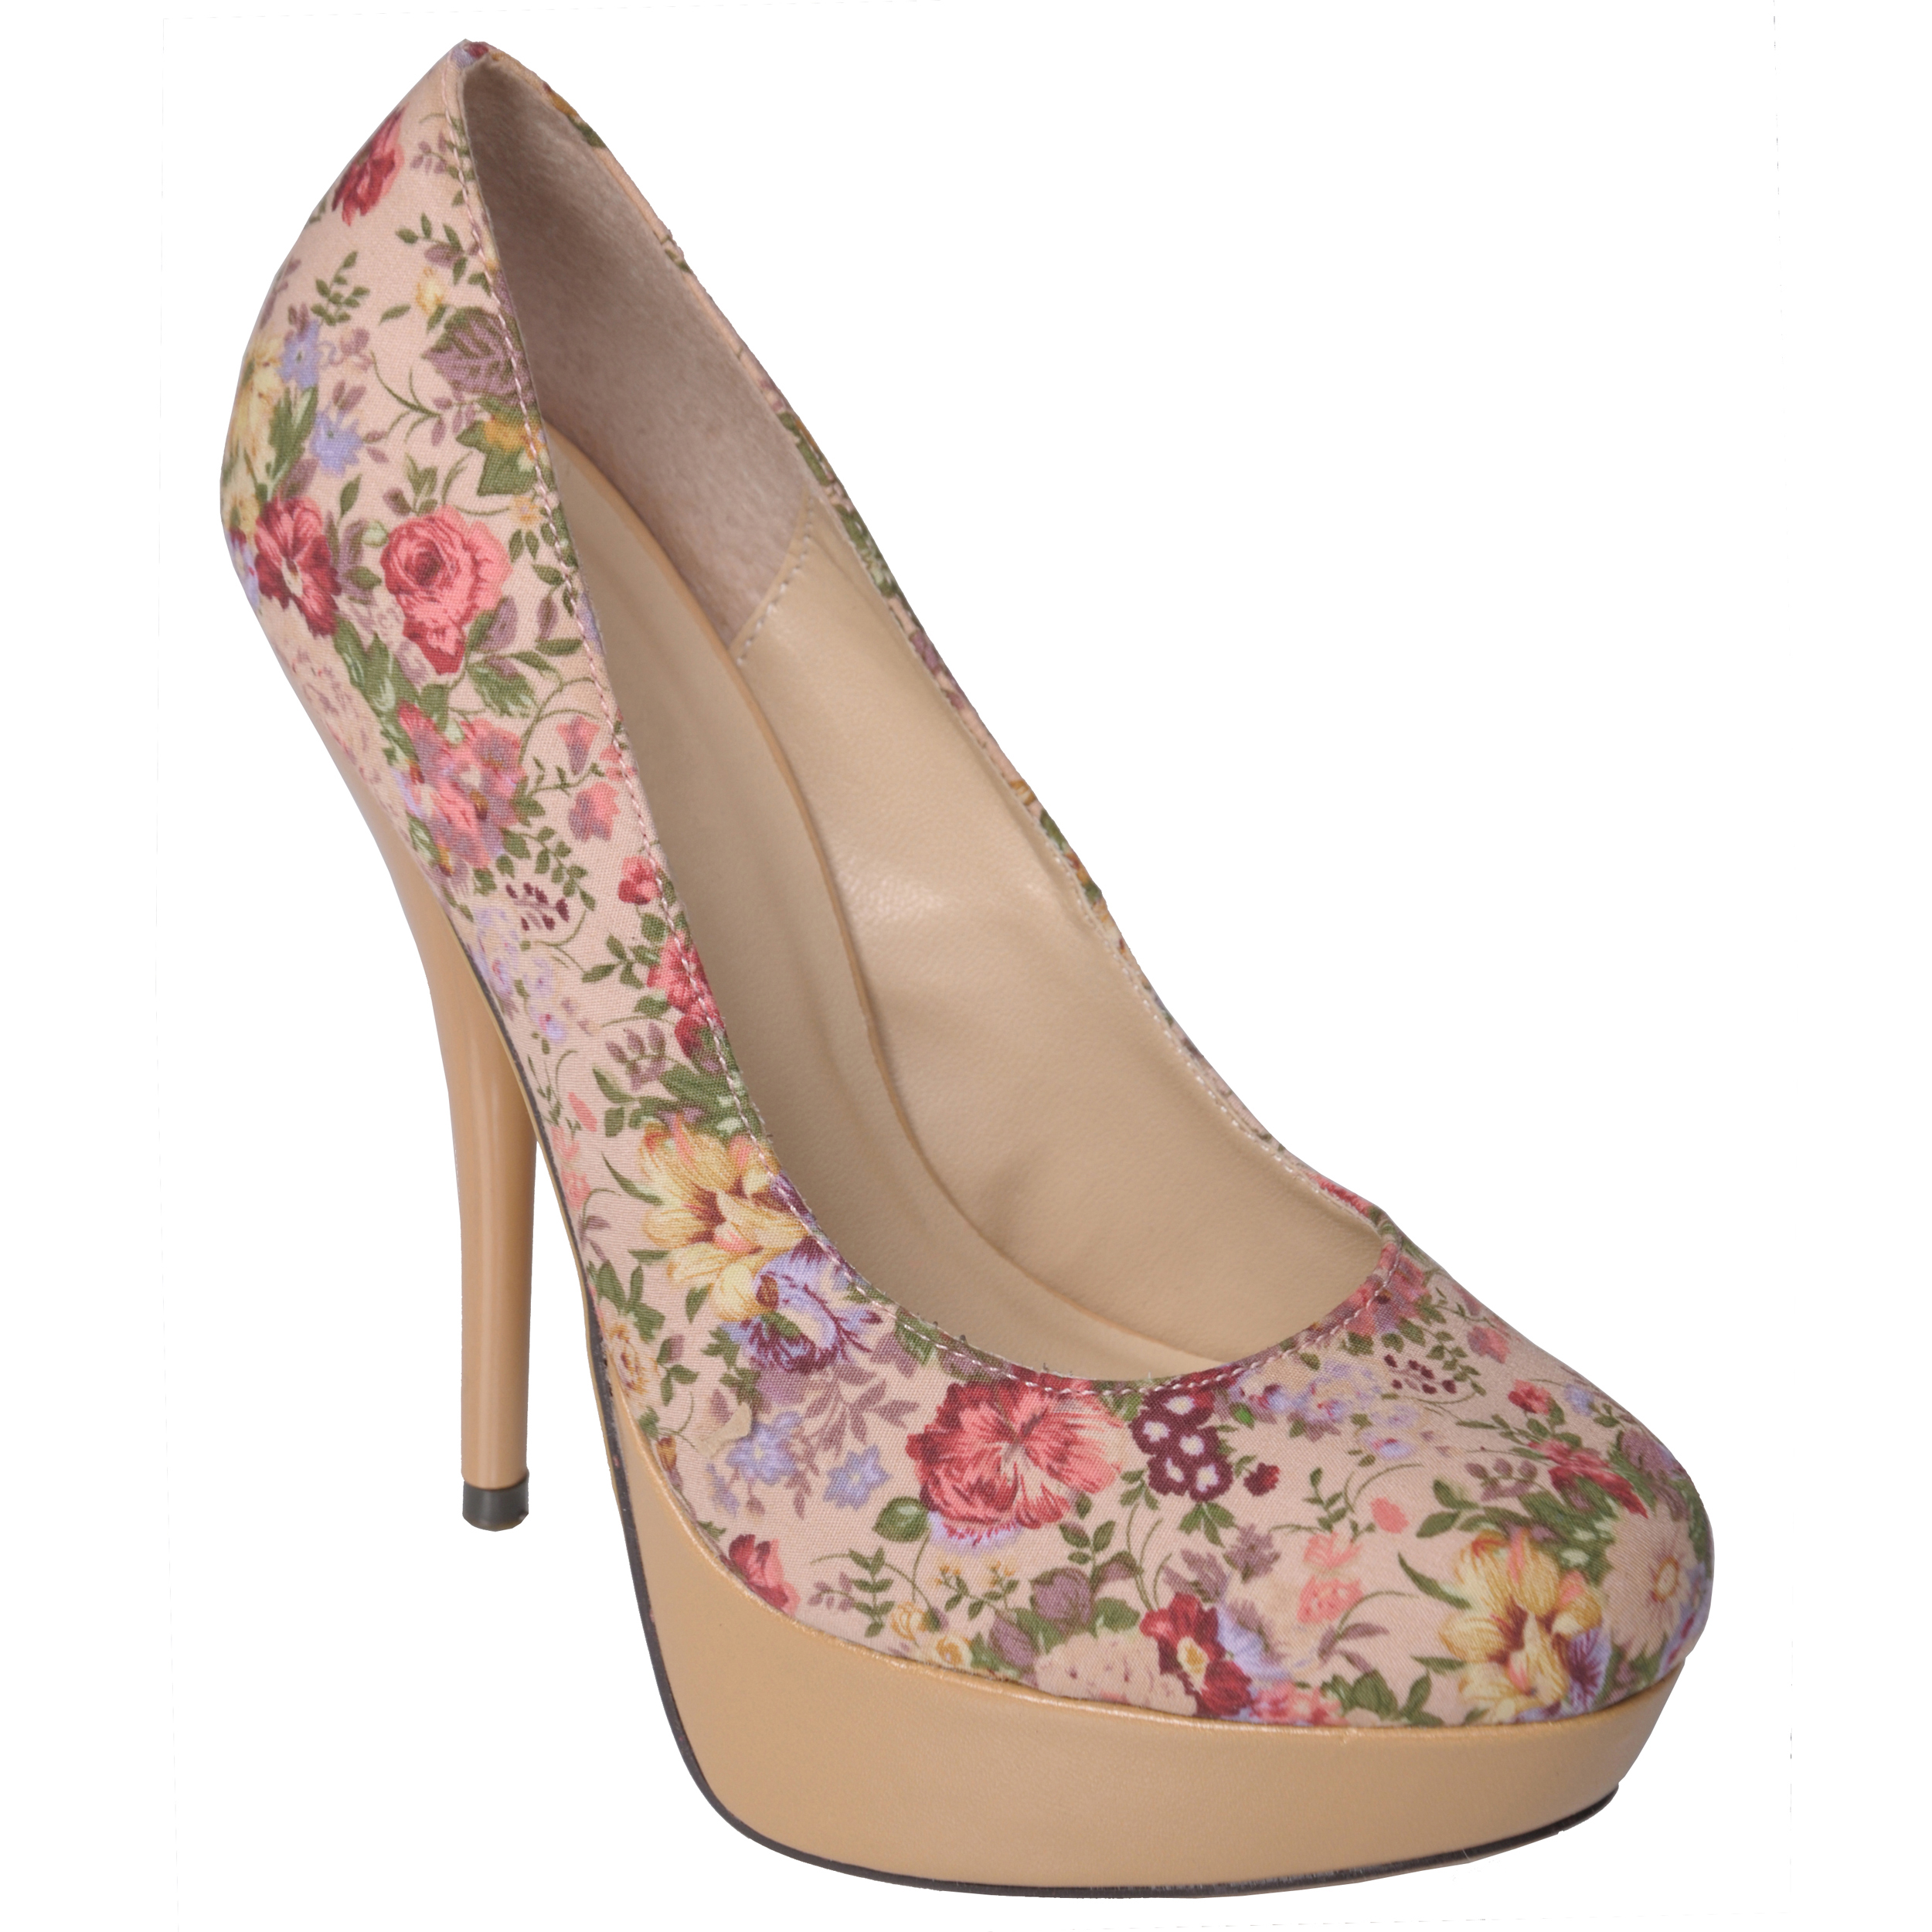 Glaze by journee co women's 'nicole 2 tau' floral print platform pumps